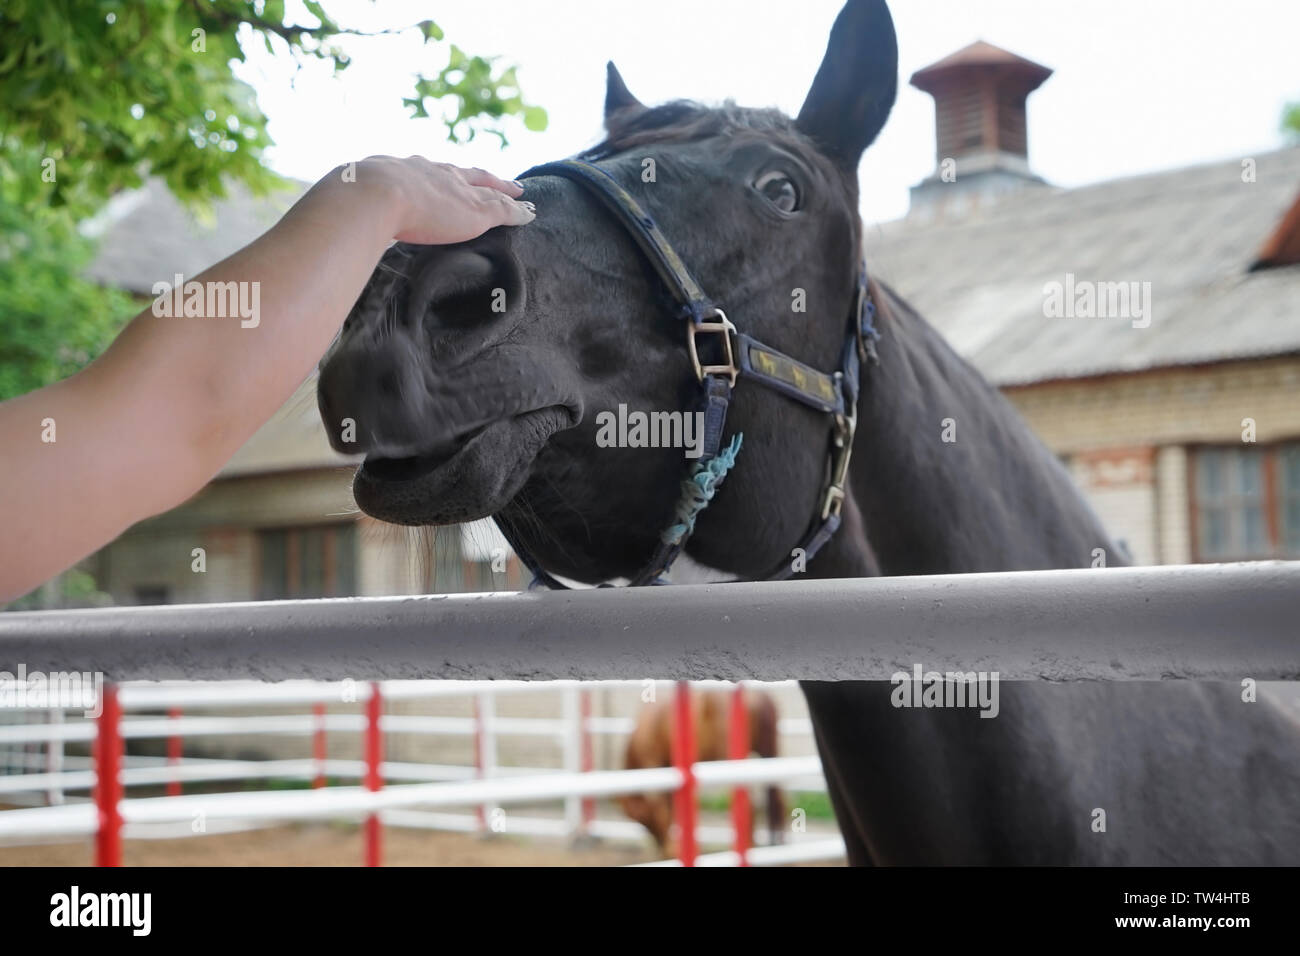 Female hand stroking horse. Concept of volunteering at animal shelter - Stock Image